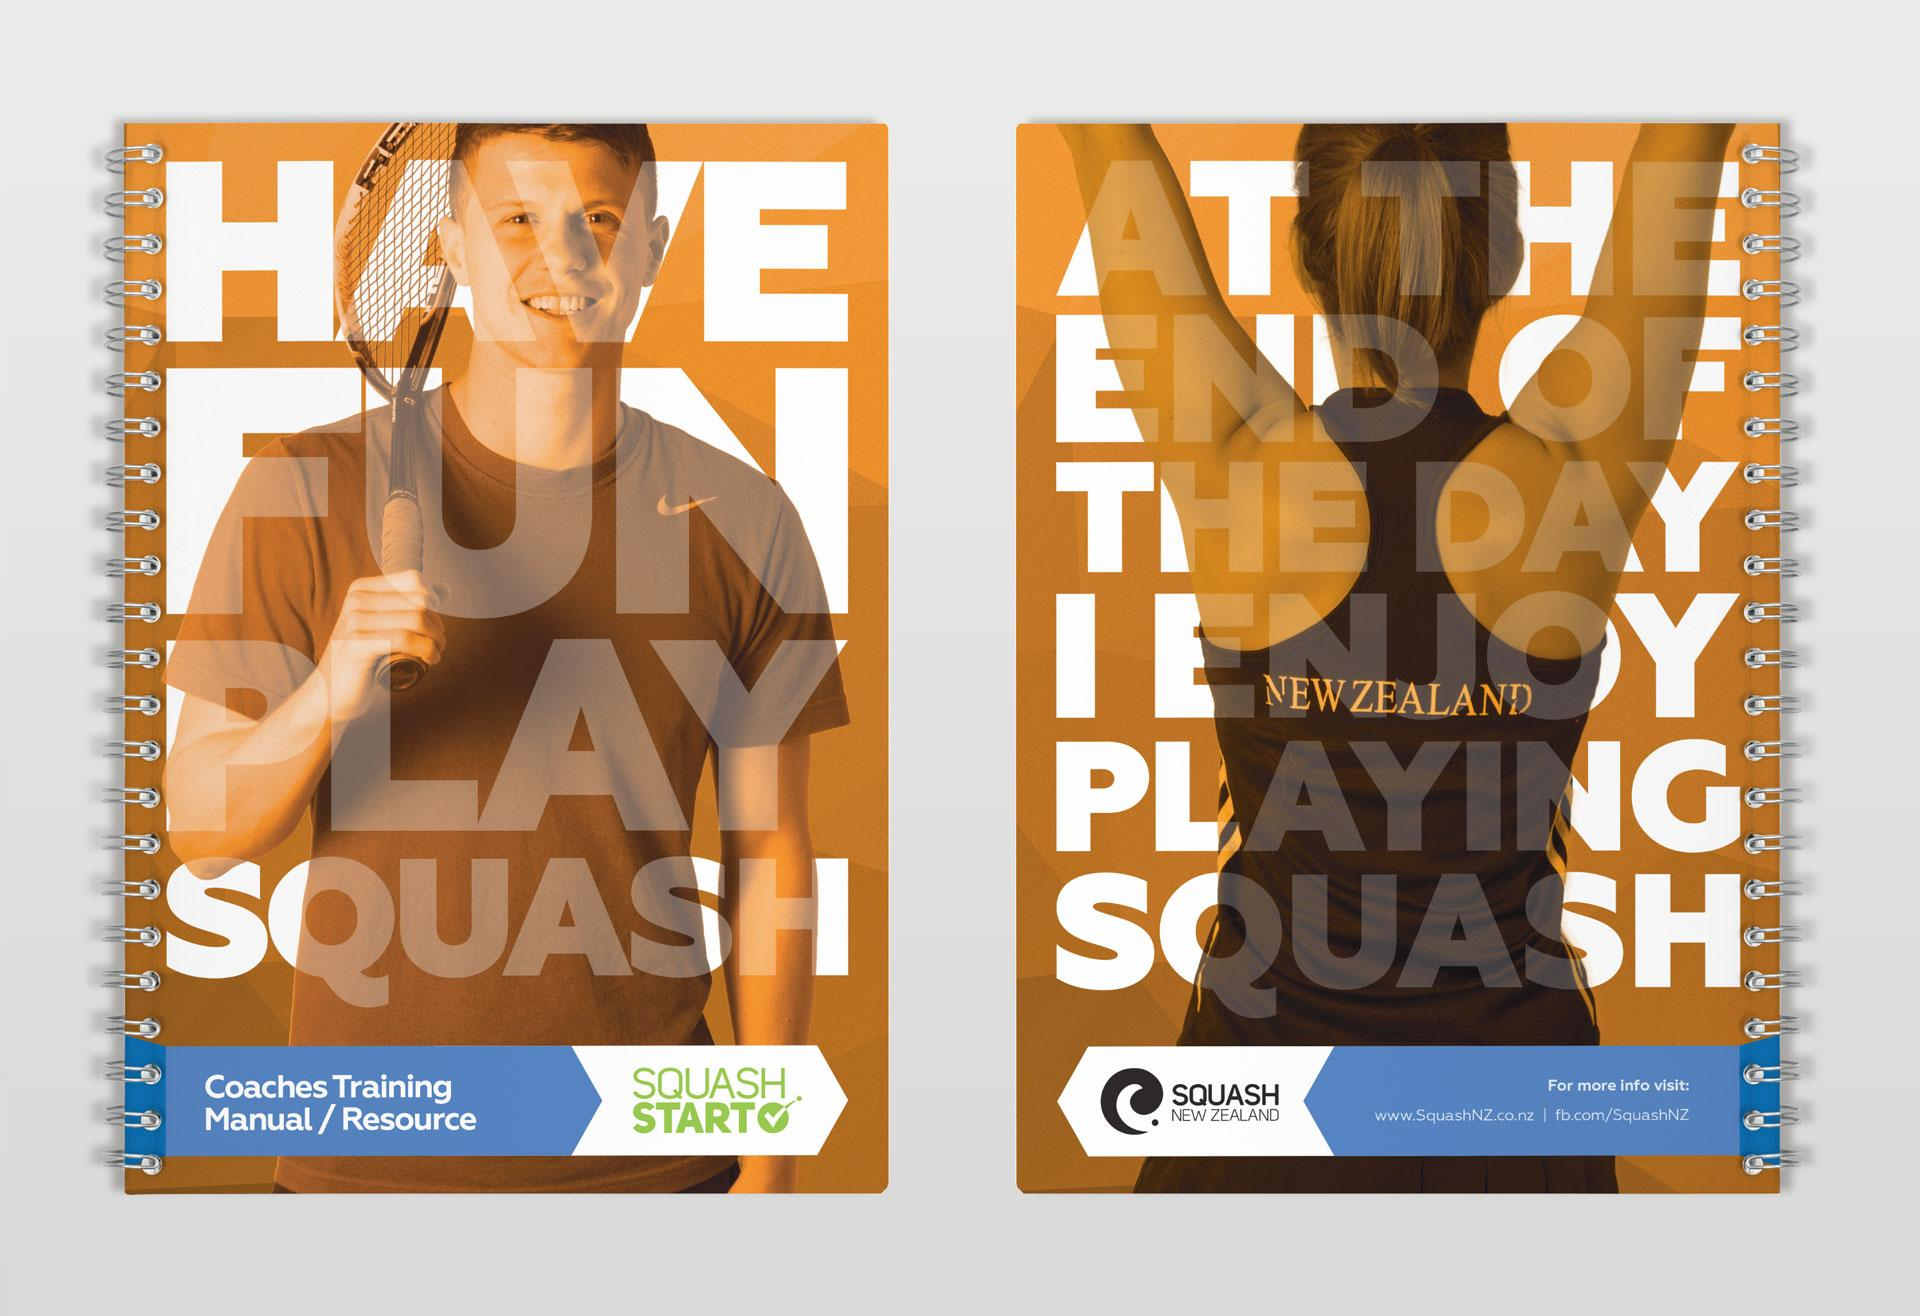 Squash New Zealand Programmes image